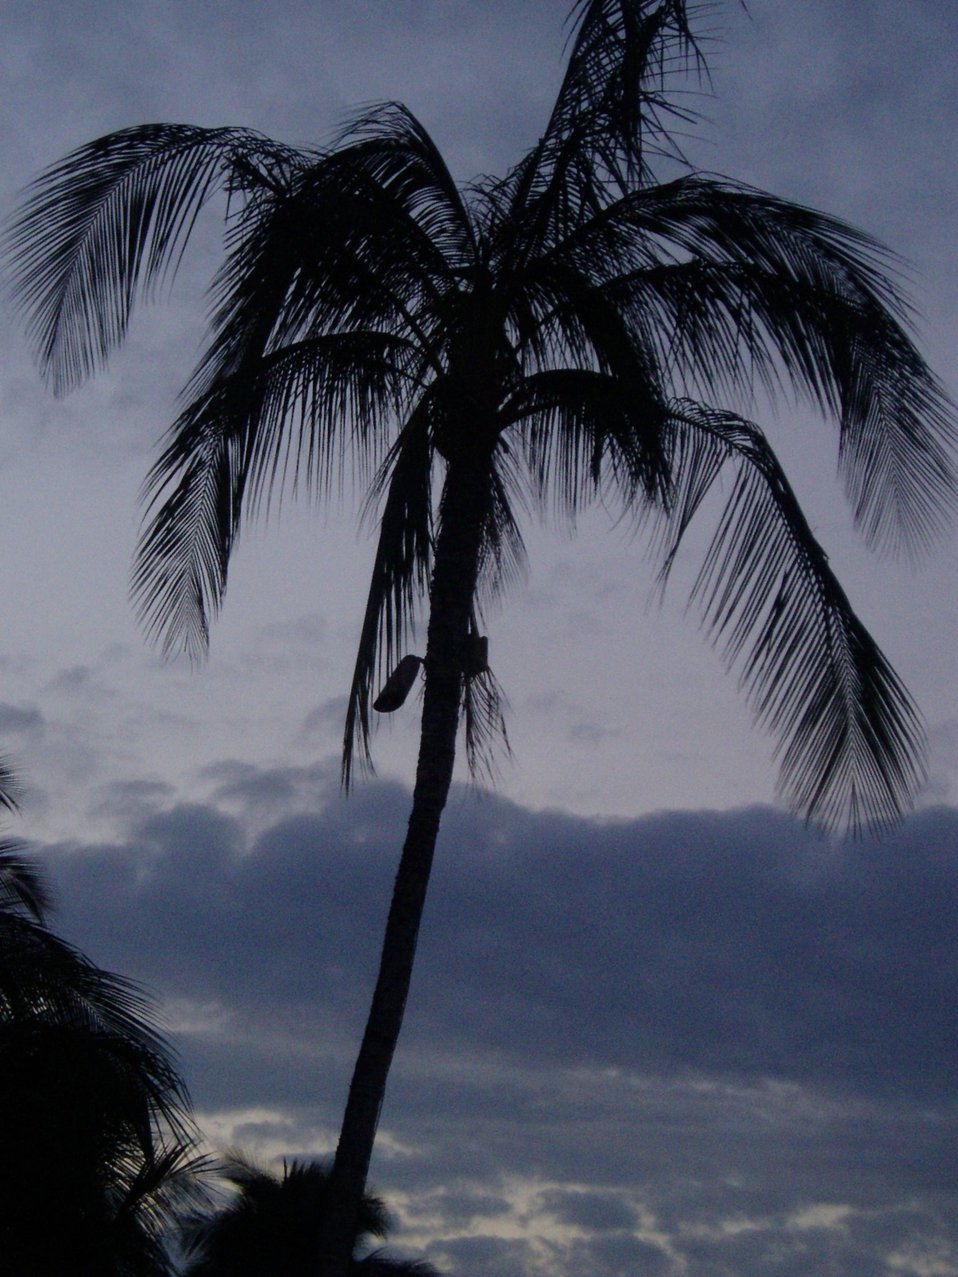 A palm tree silhouetted at dusk.